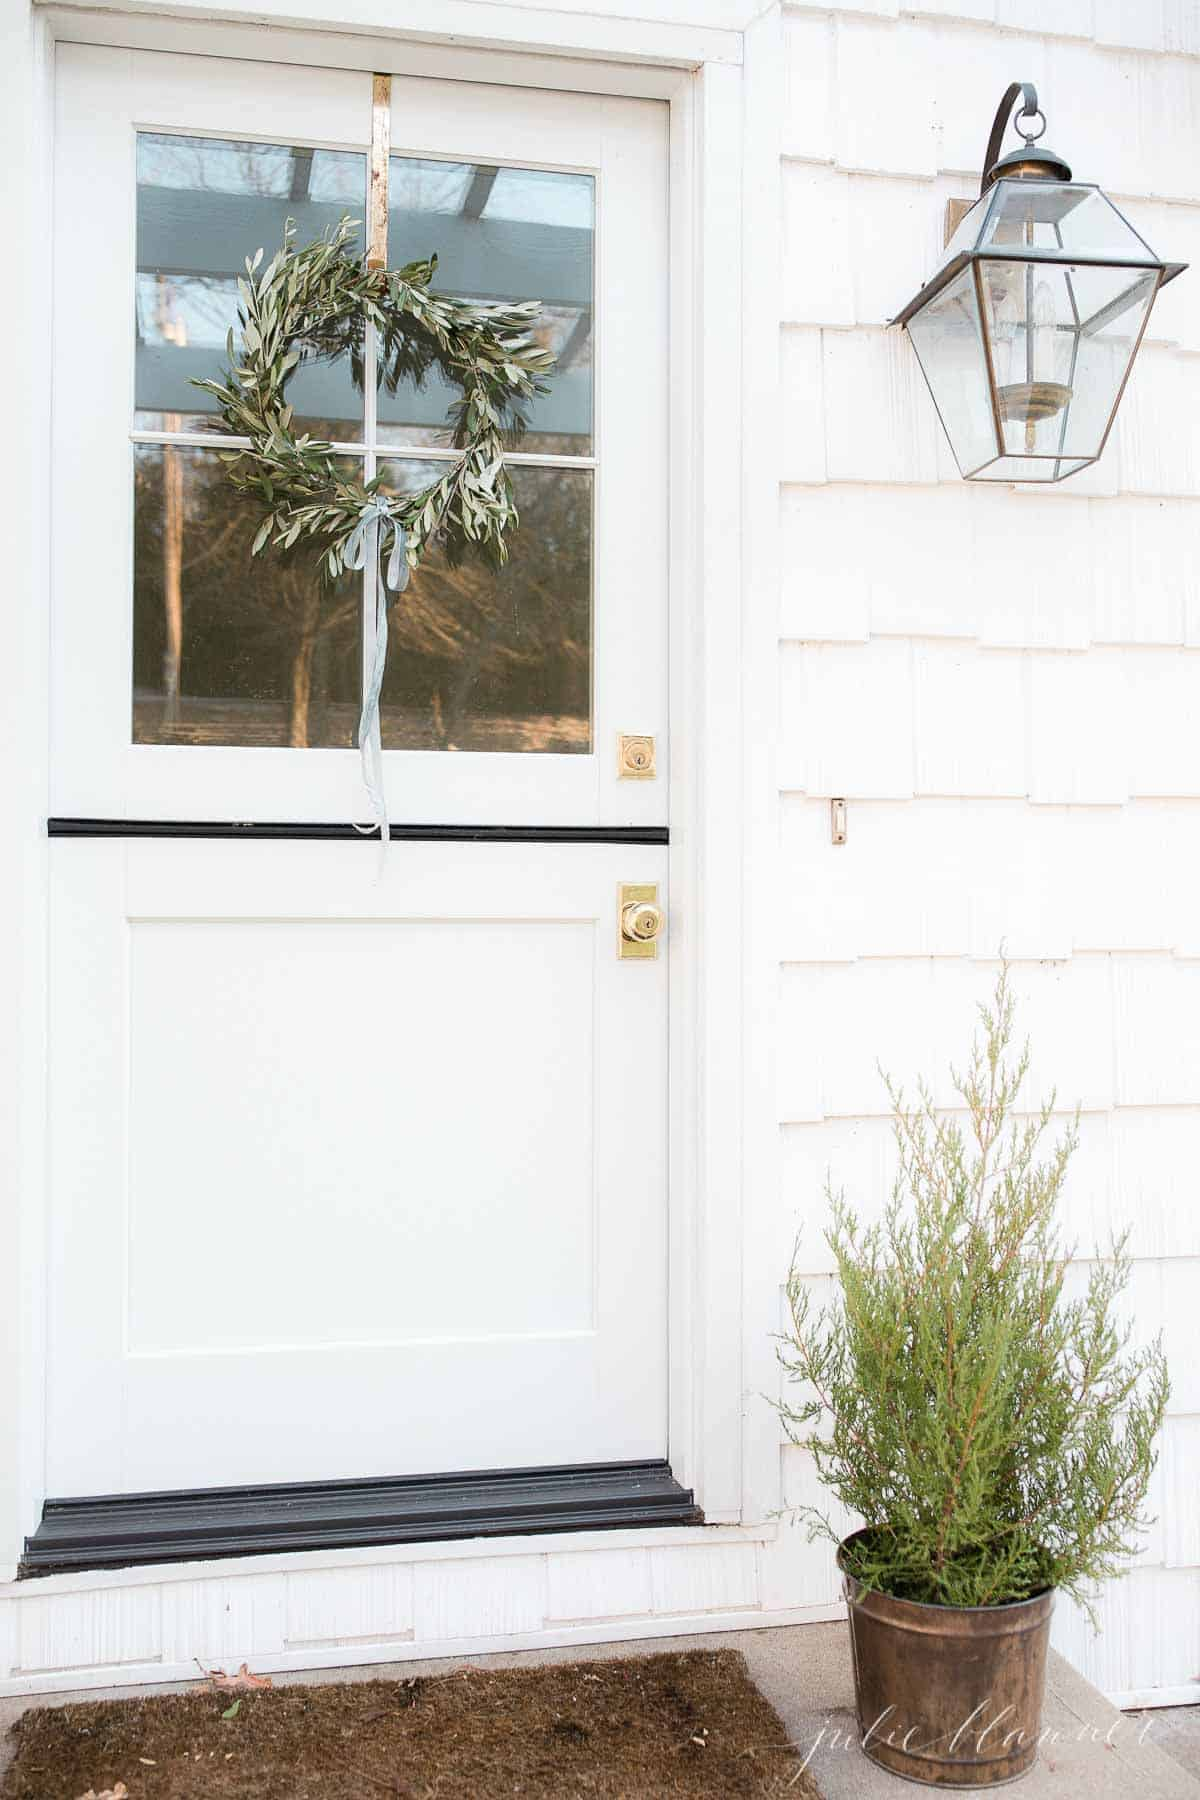 A small handmade olive wreath hangs on the top half of a white dutch door, with a small Christmas tree to the side.